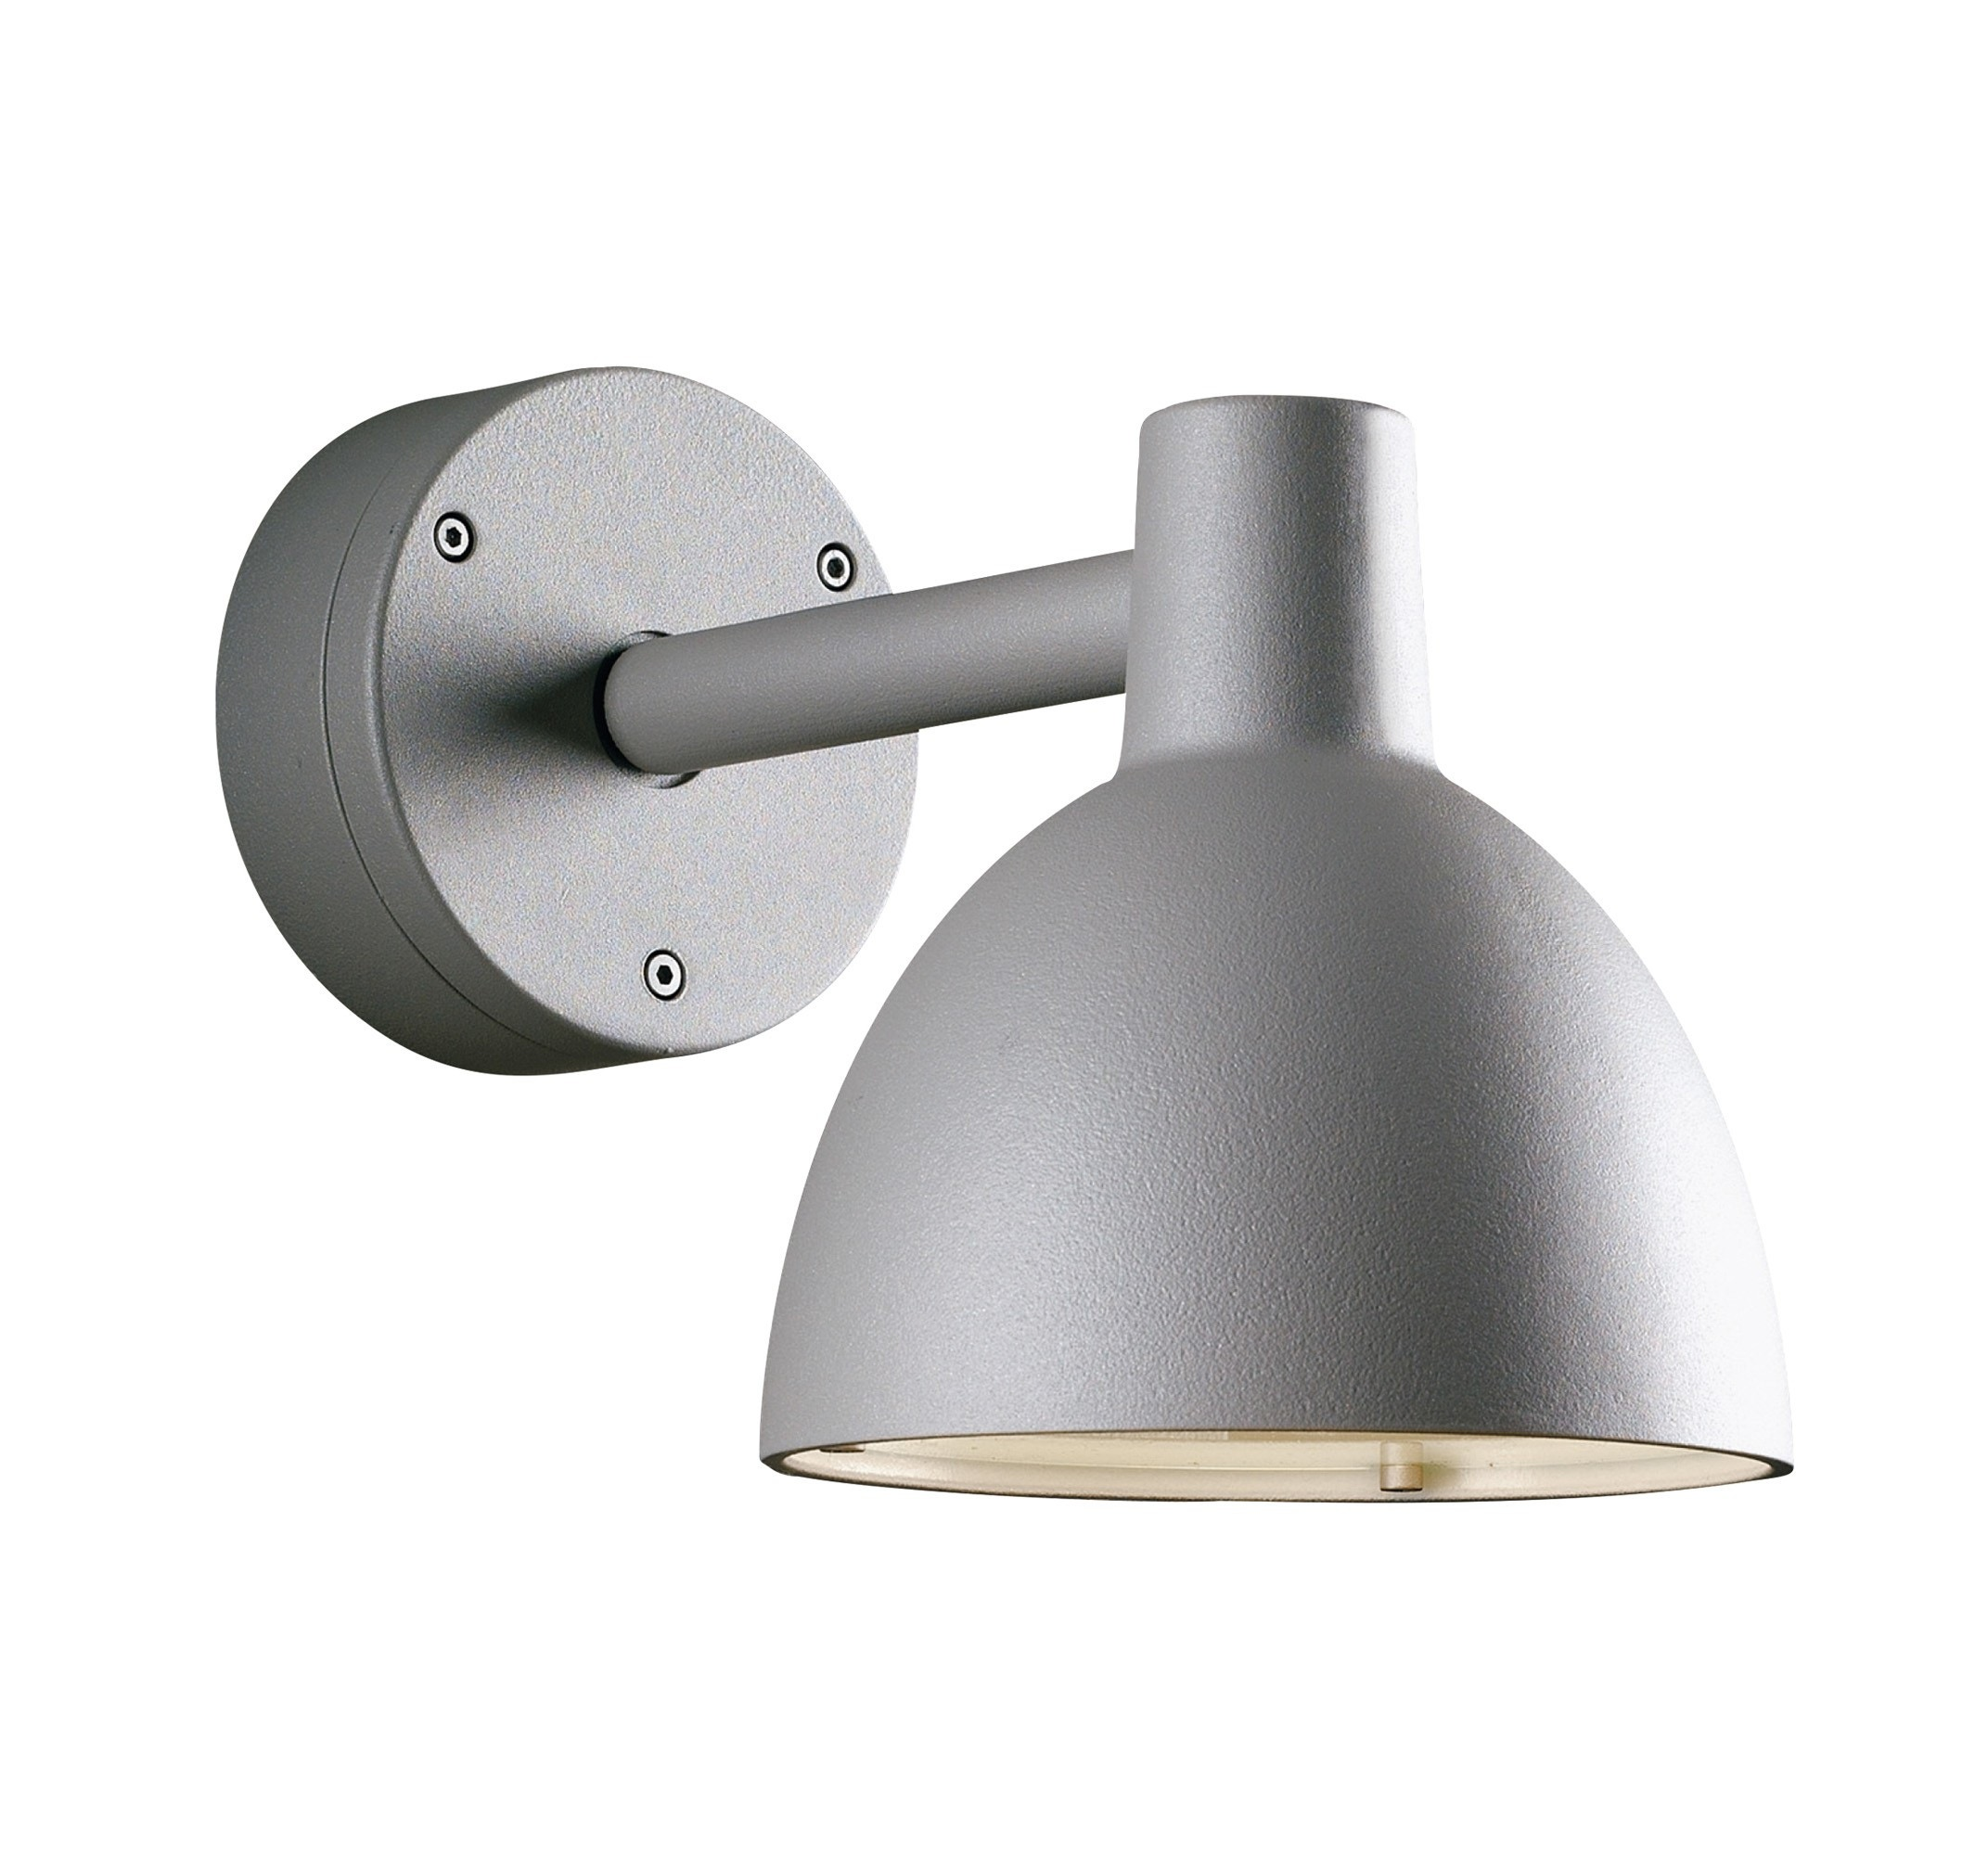 Louis Poulsen Toldbod Outdoor Wall Lamp